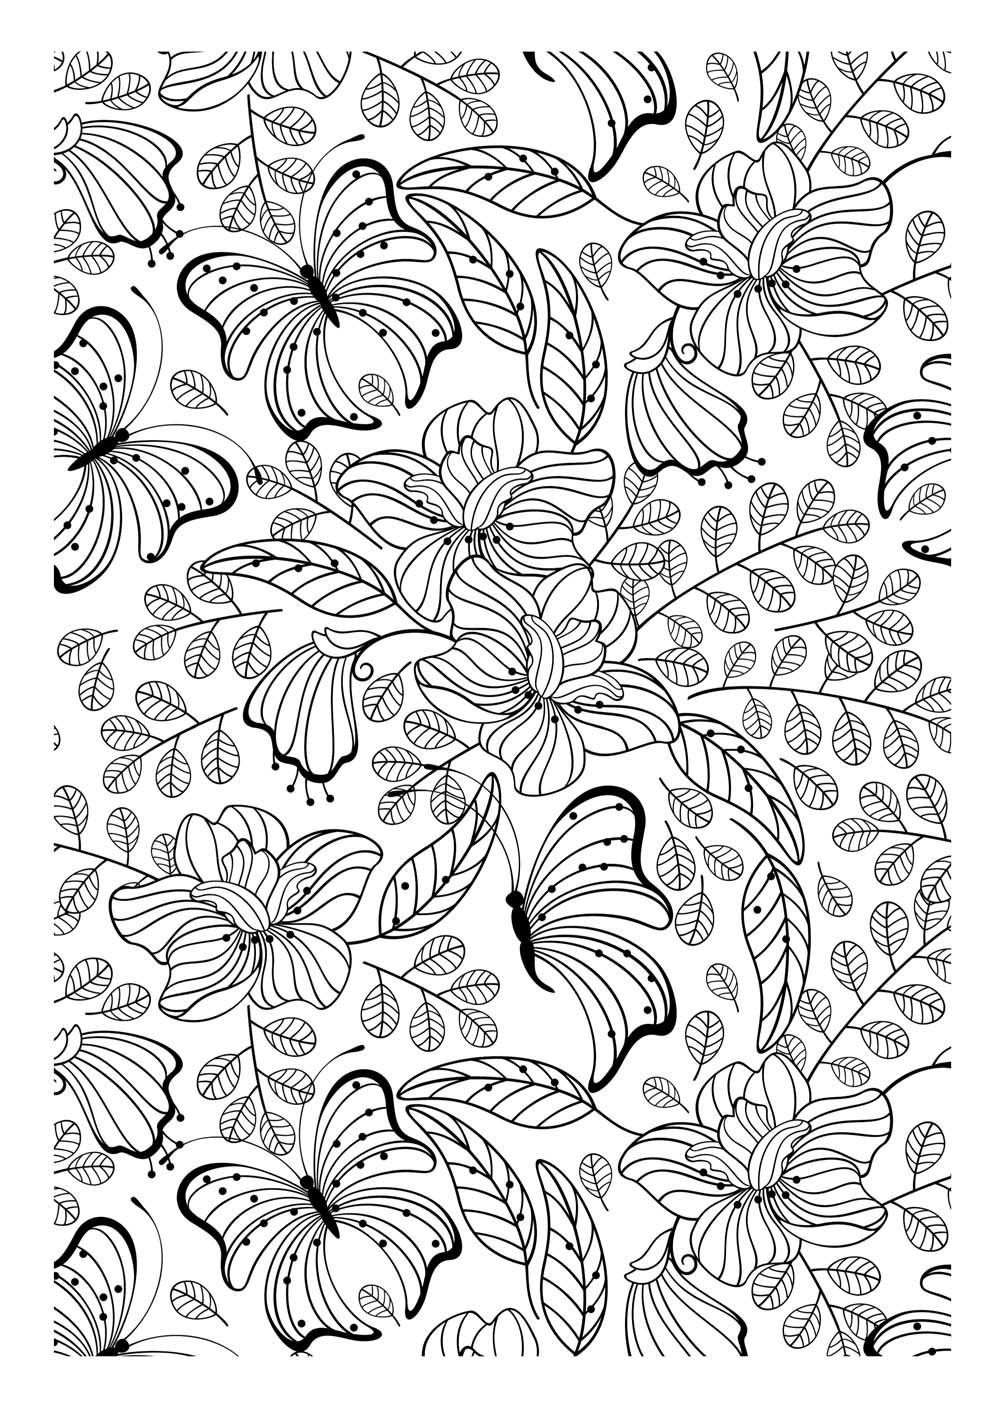 Free Coloring Page Adult Butterflys Another Image To Print And Color Filled With Pretty Leaves Flowers Butterflies Certainly An